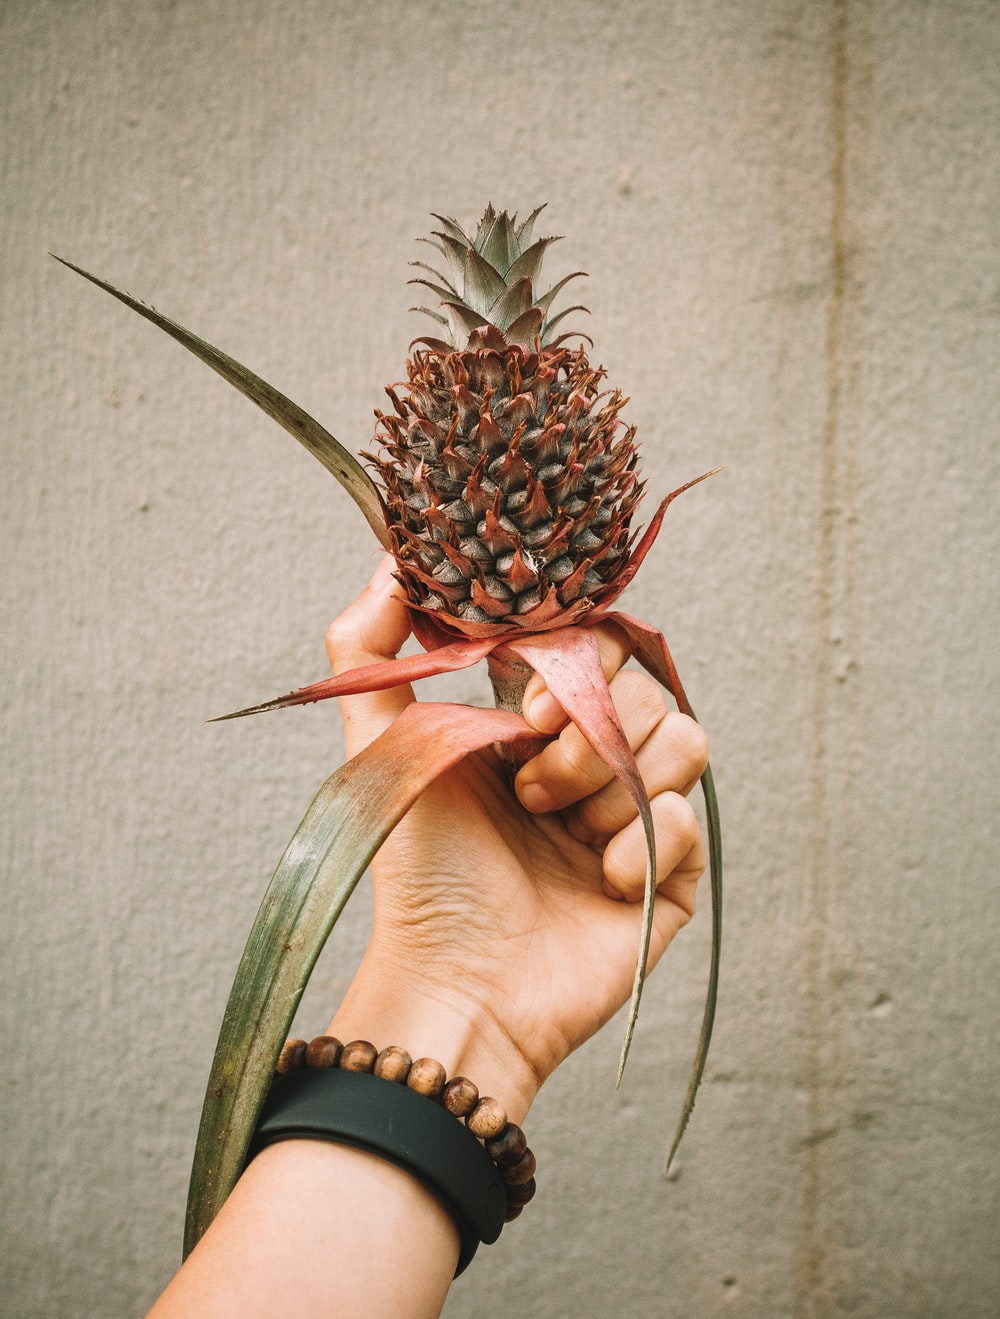 person holding pineapple fruit during daytime